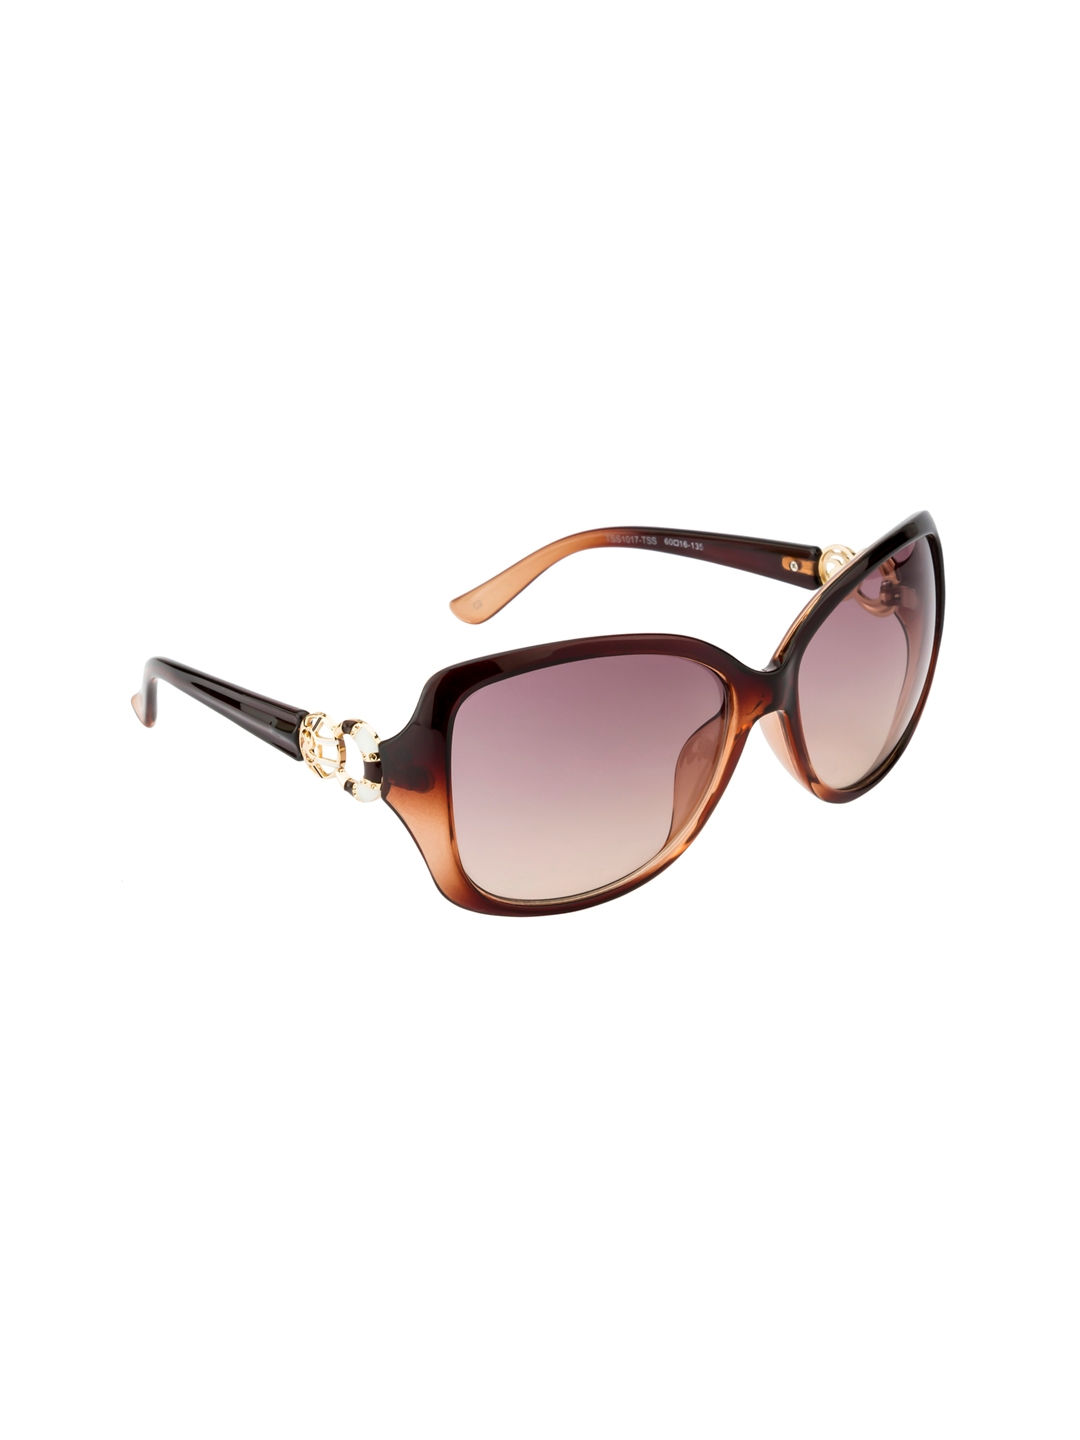 21f5061526e Buy Ted Smith Women Pink Oversized Sunglasses TSS1017 C2 ...